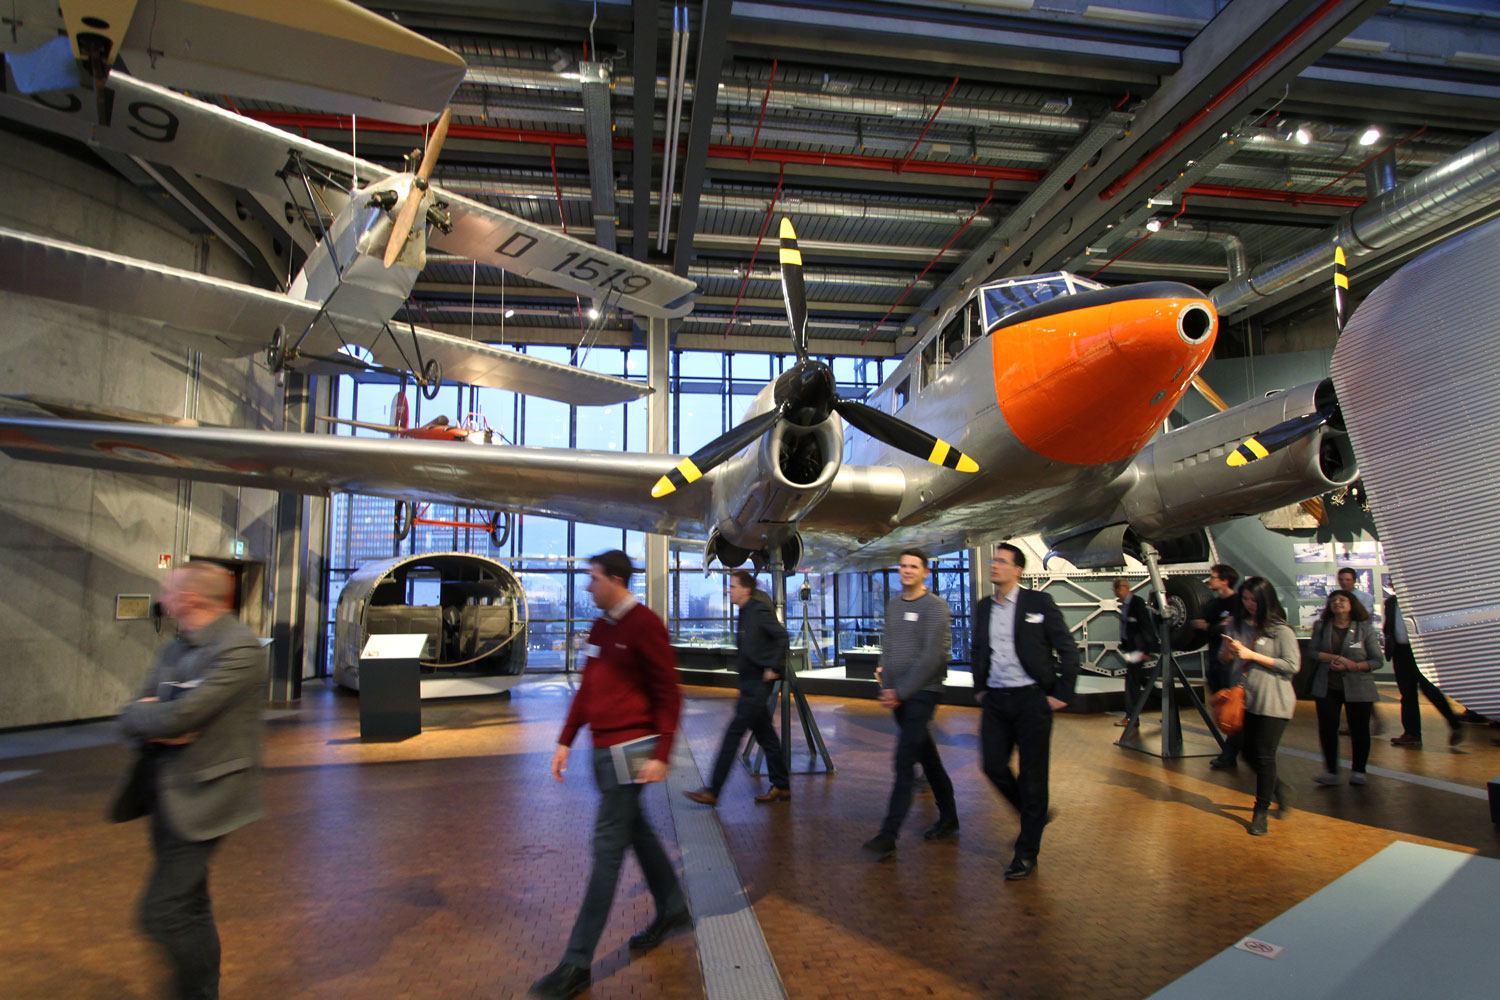 2018 Kick off event - Wednesday, February 28, 201817:00 - 22:00@ The Deutsches Technikmuseum, Berlin, Germany